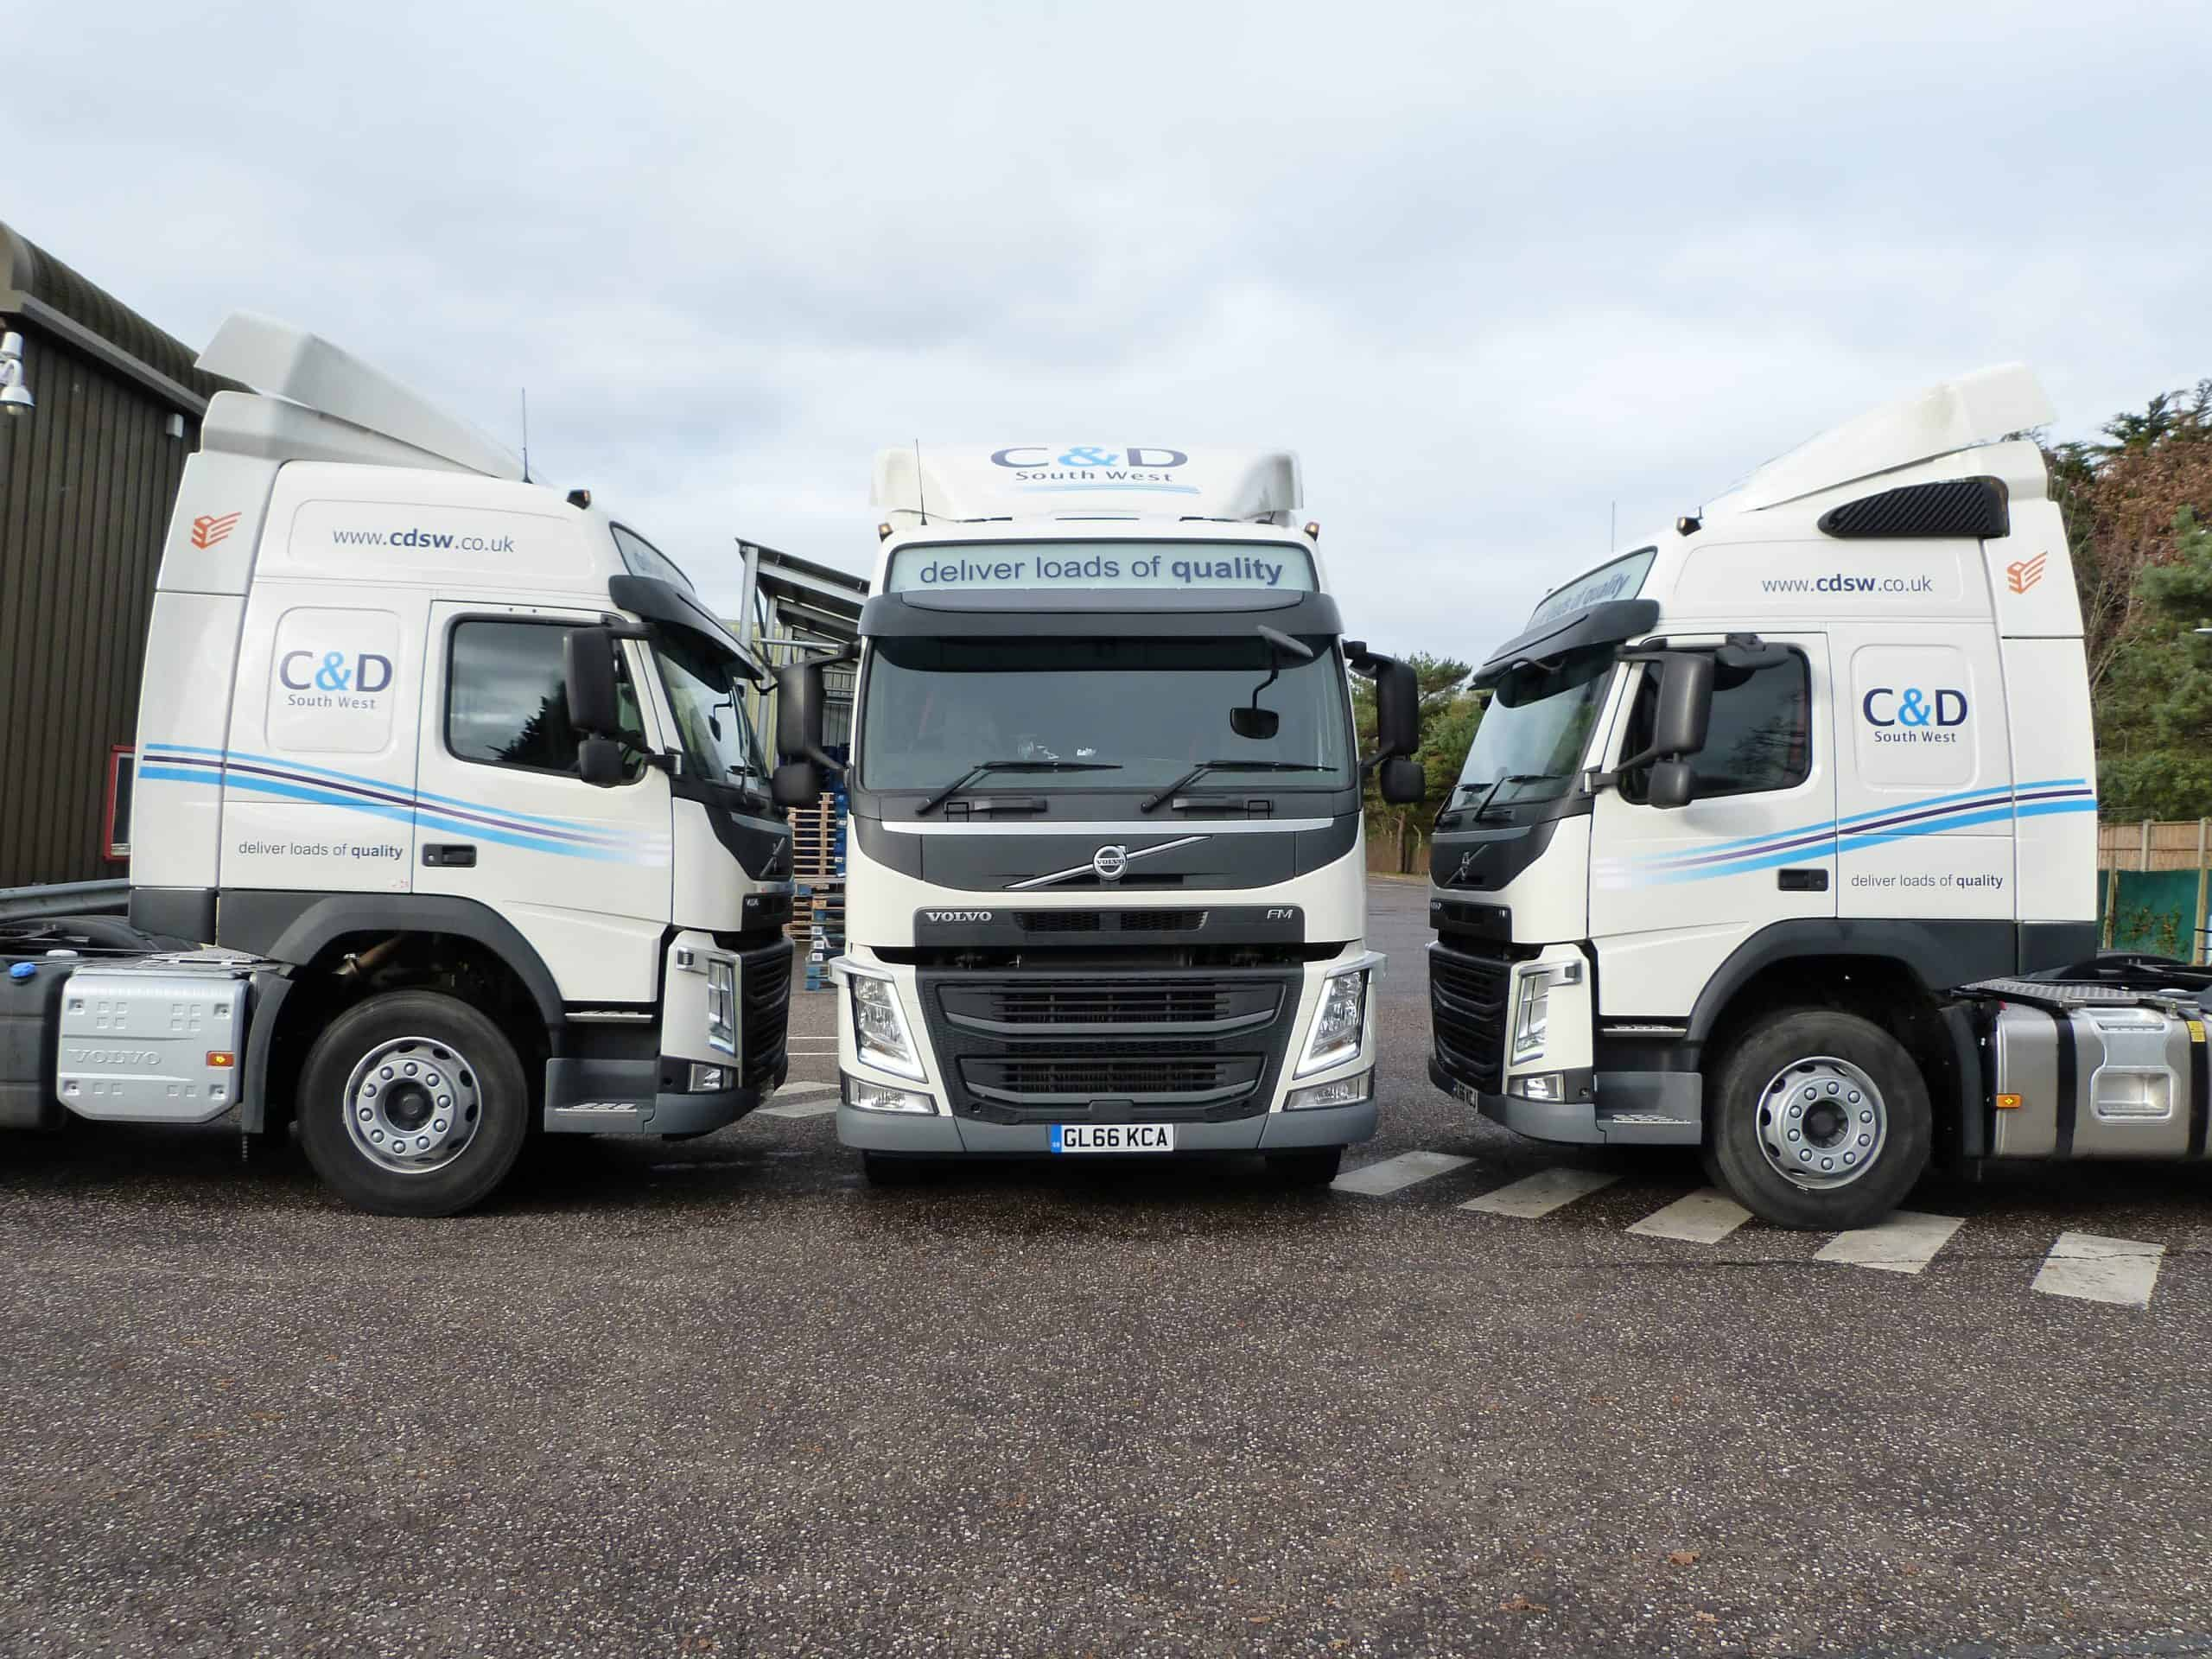 Haulage Transport & Distribution from C&D South West